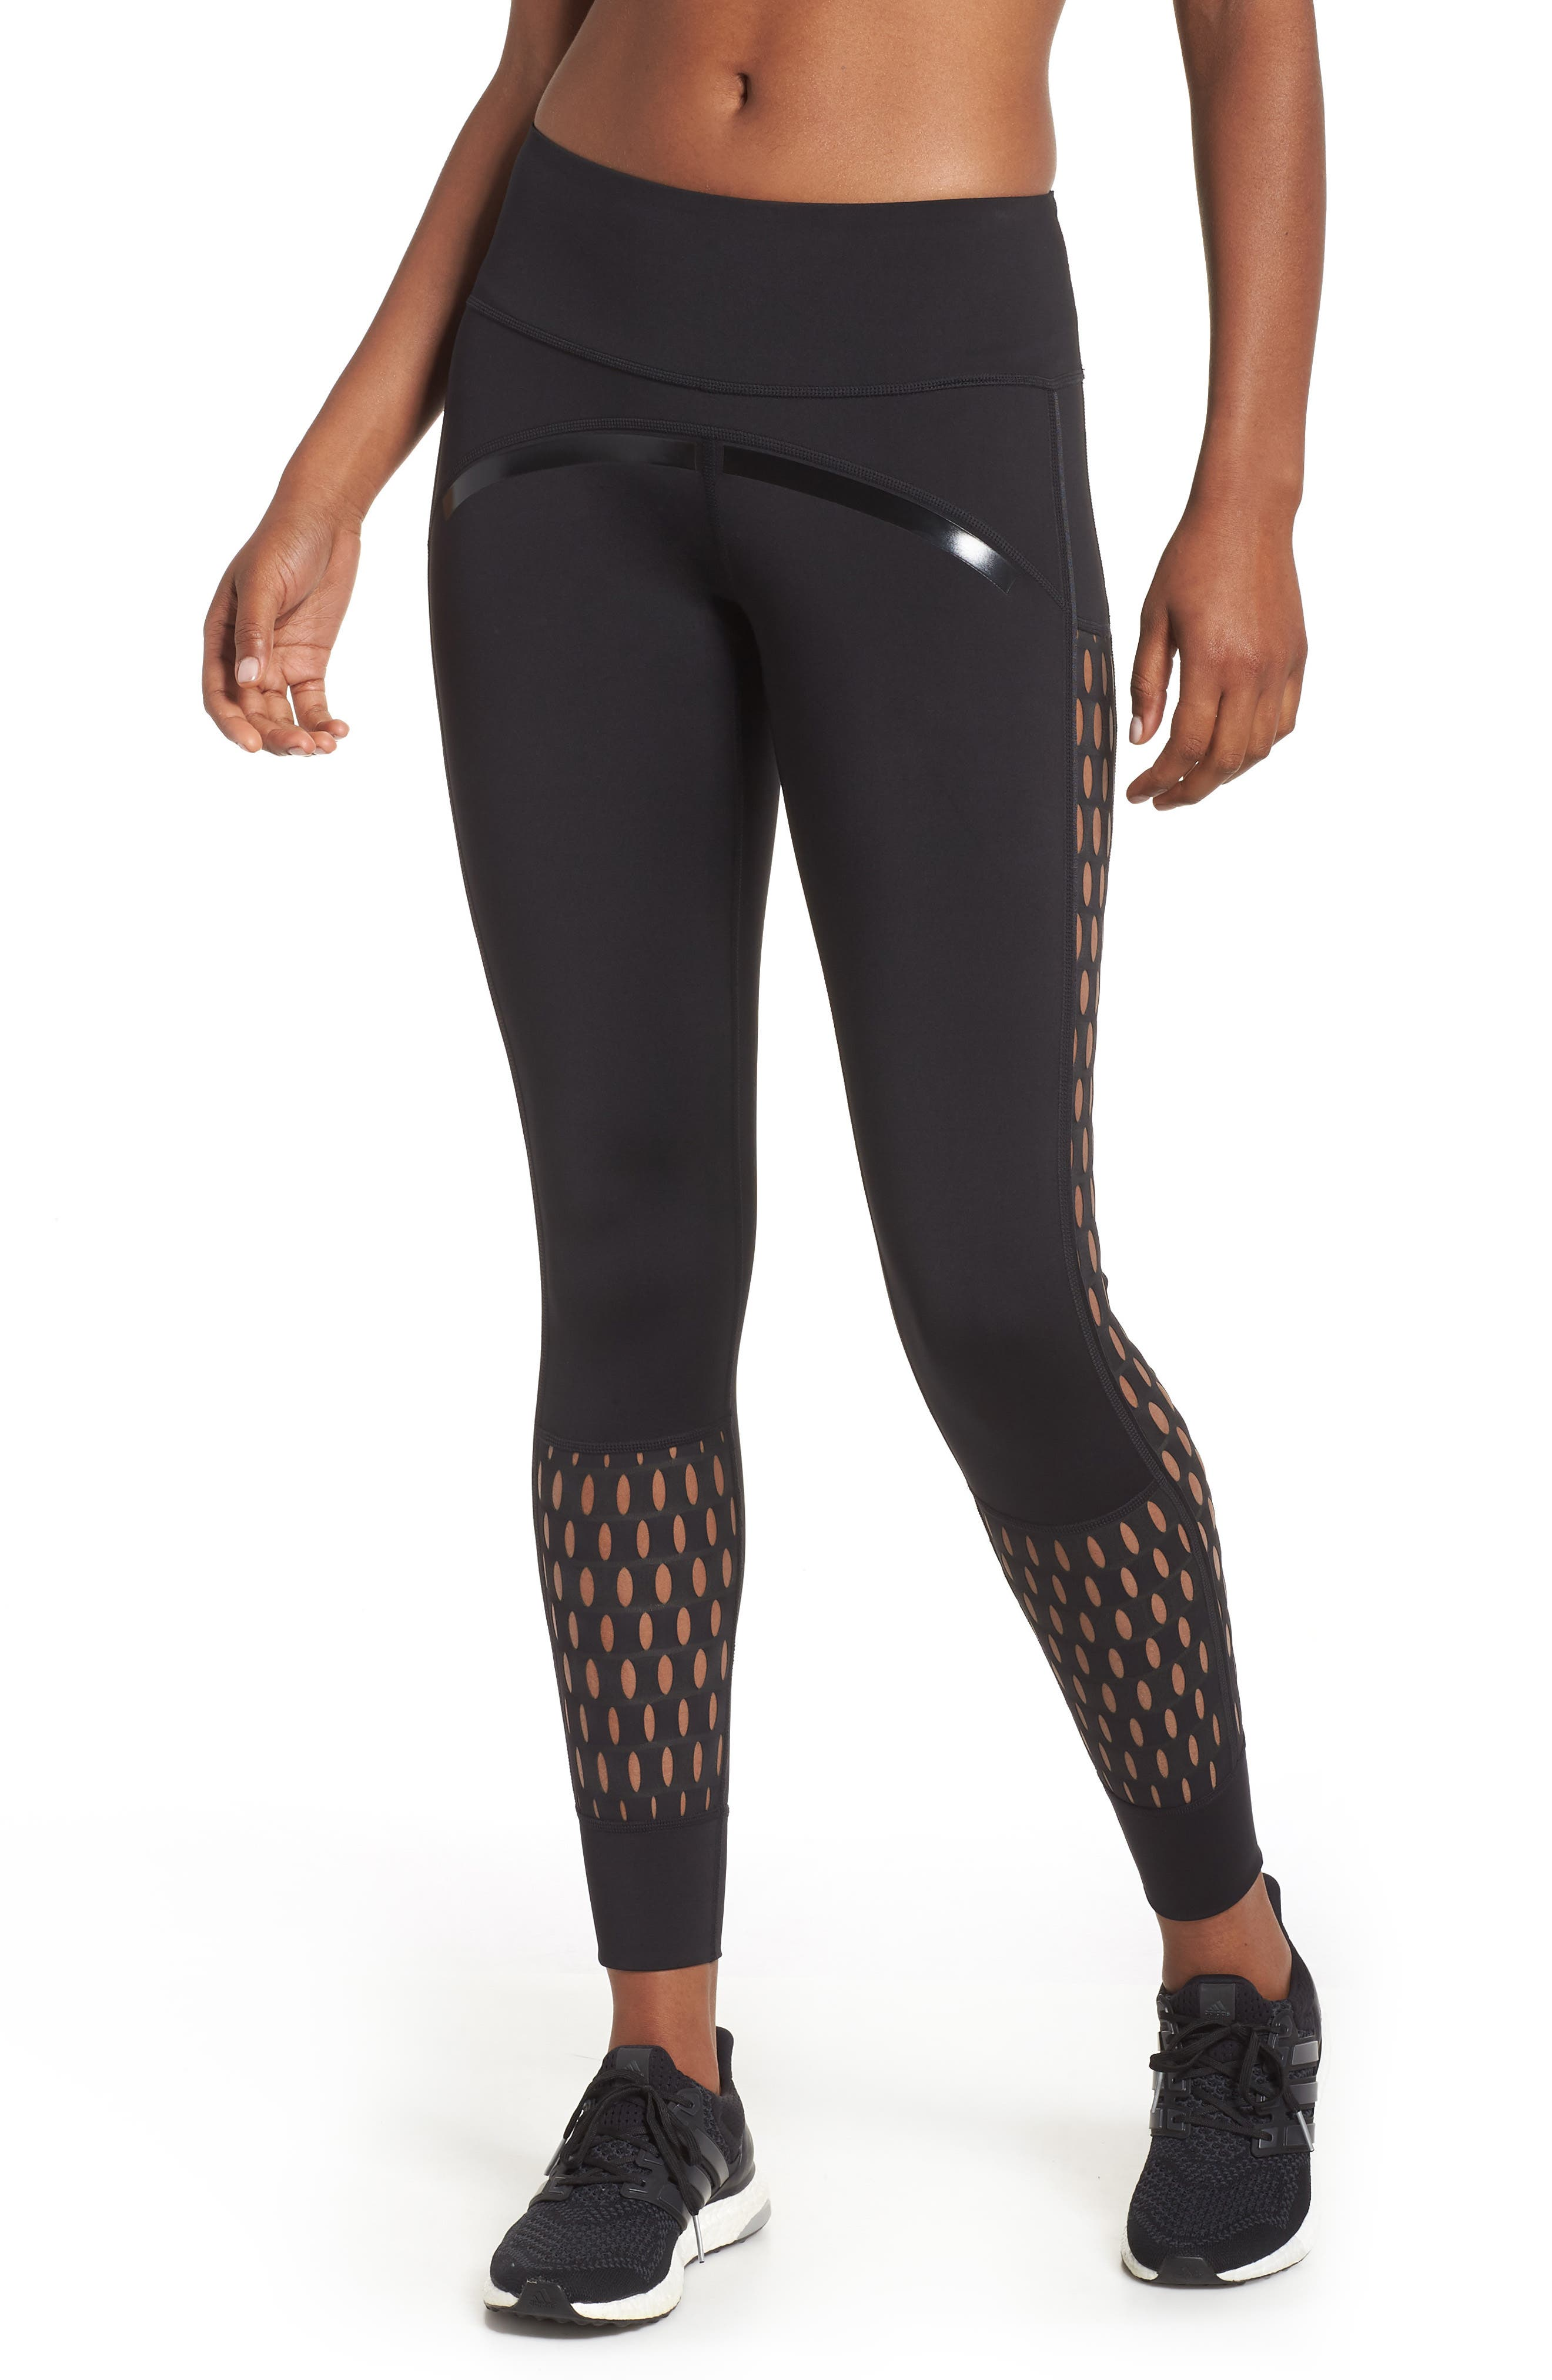 Run Training Tights,                         Main,                         color, 001